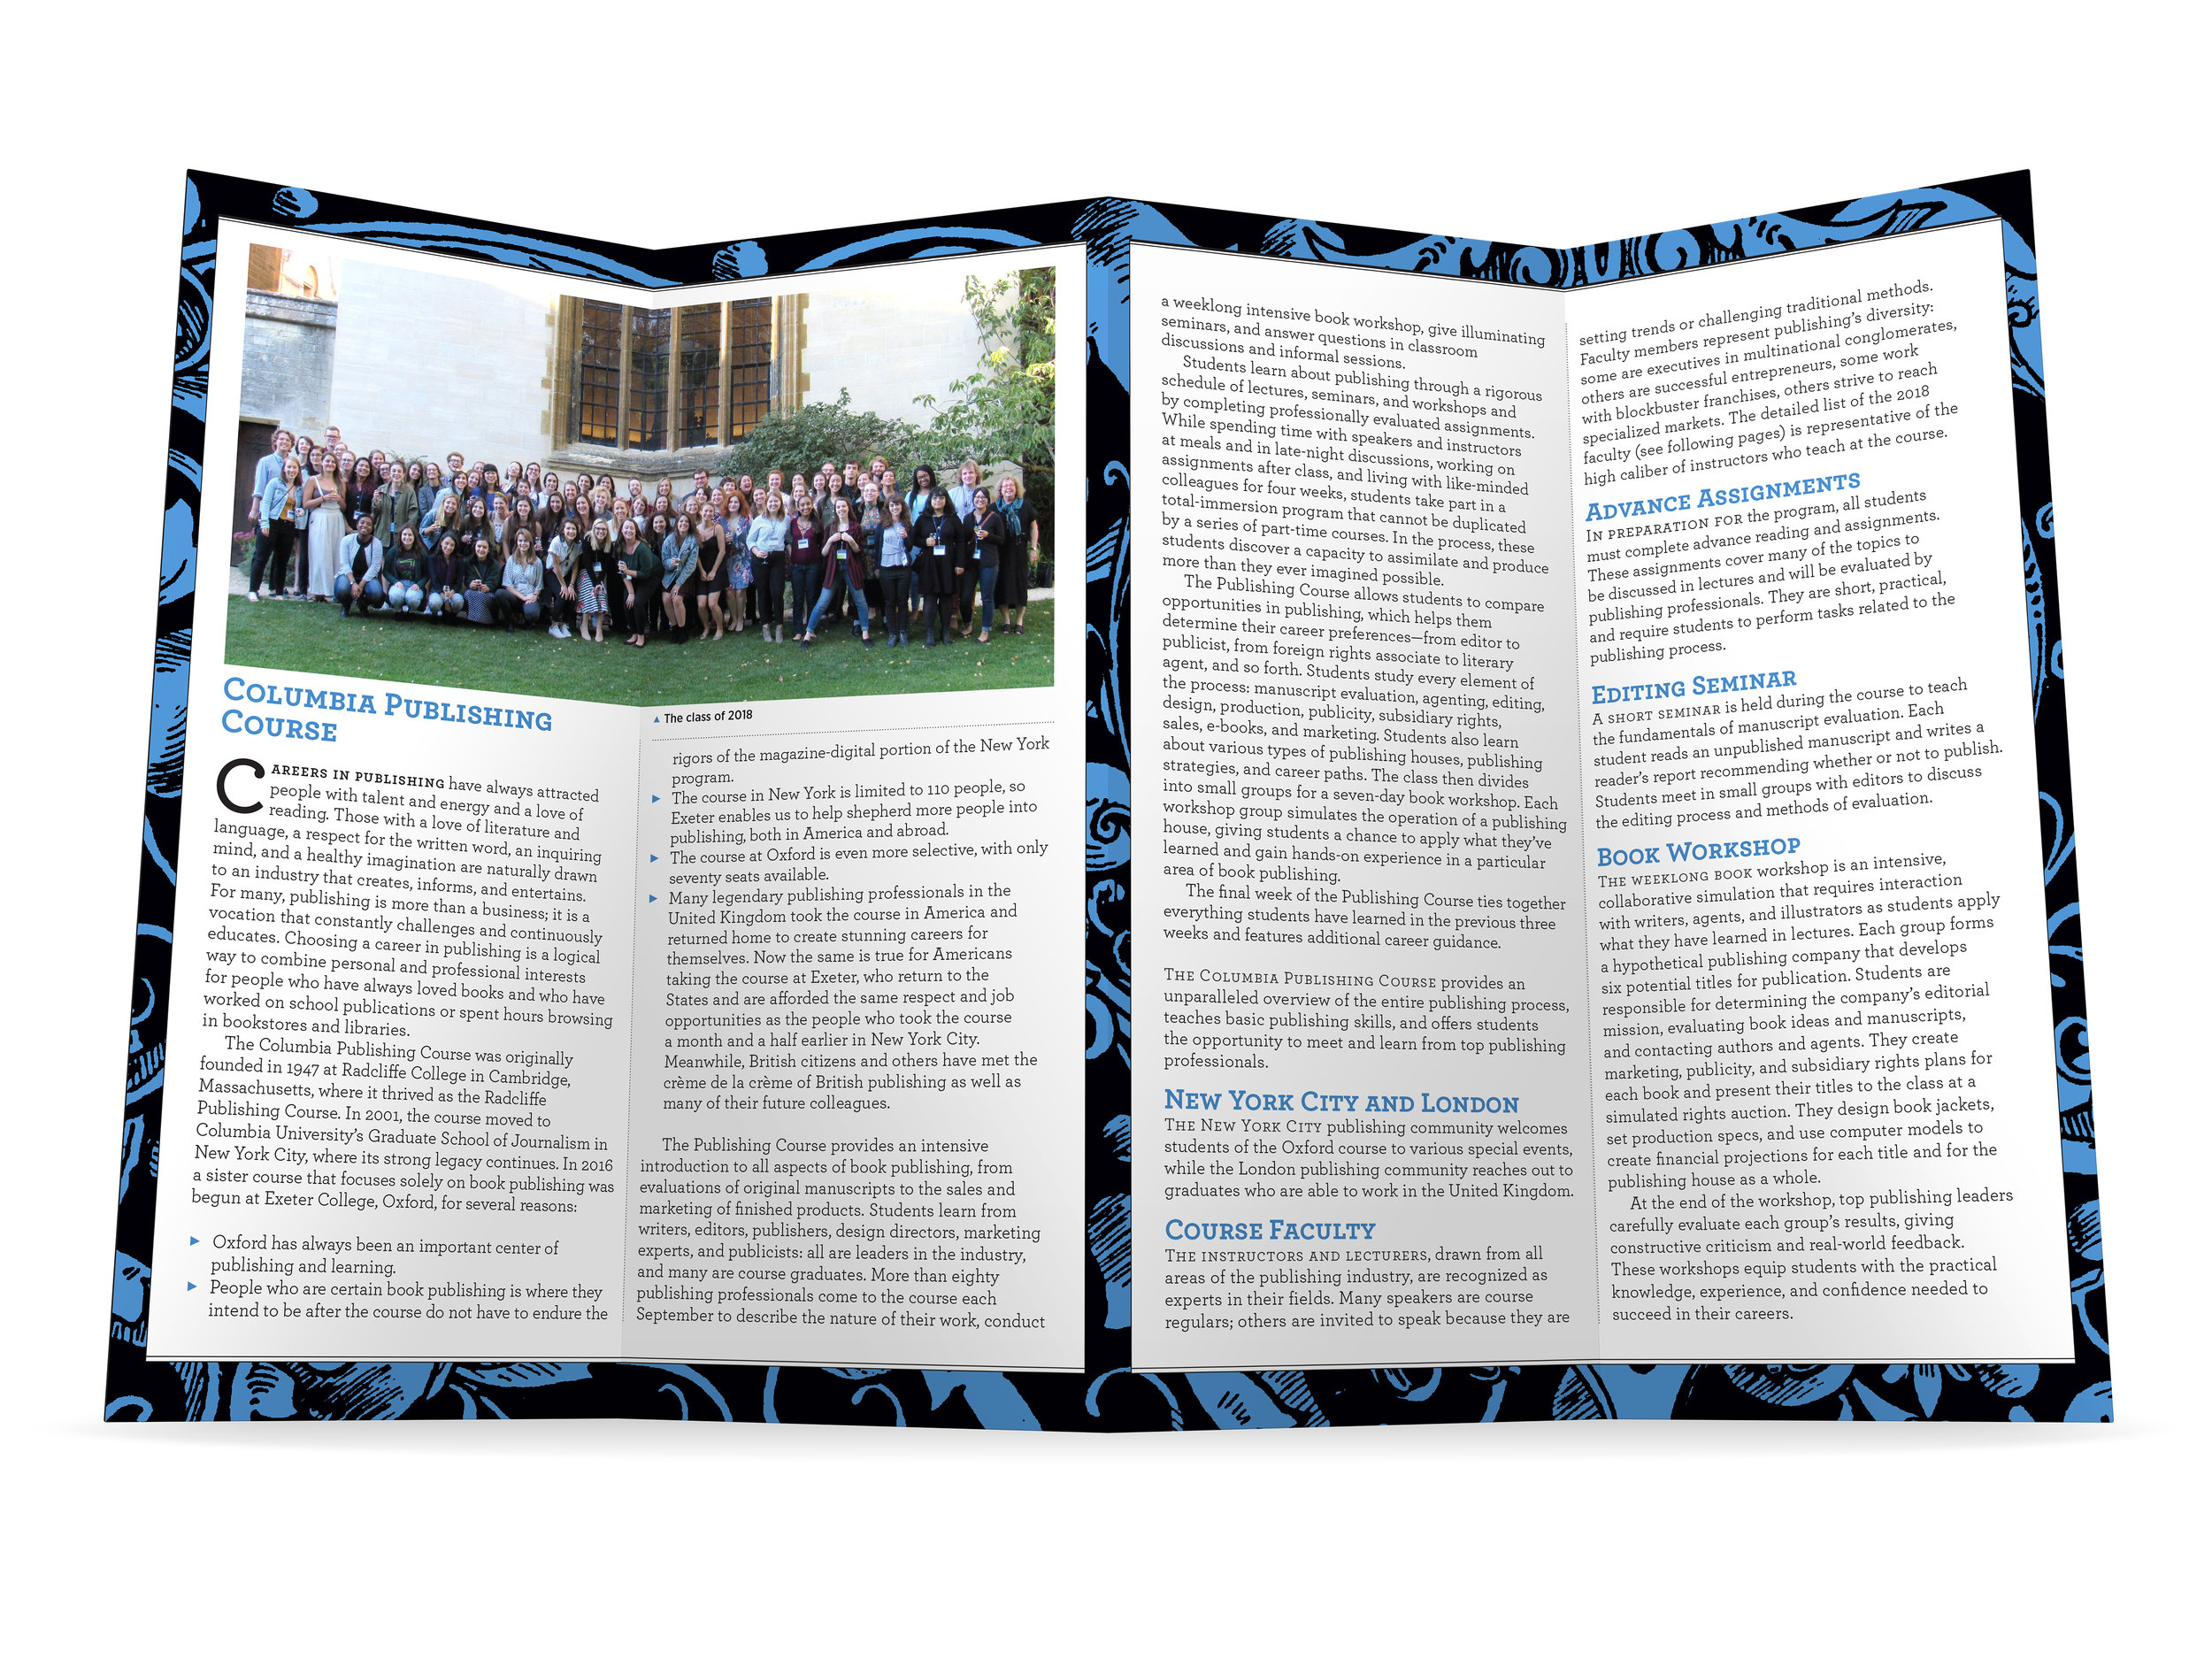 The Columbia Publishing Course Brochure, for Columbia University